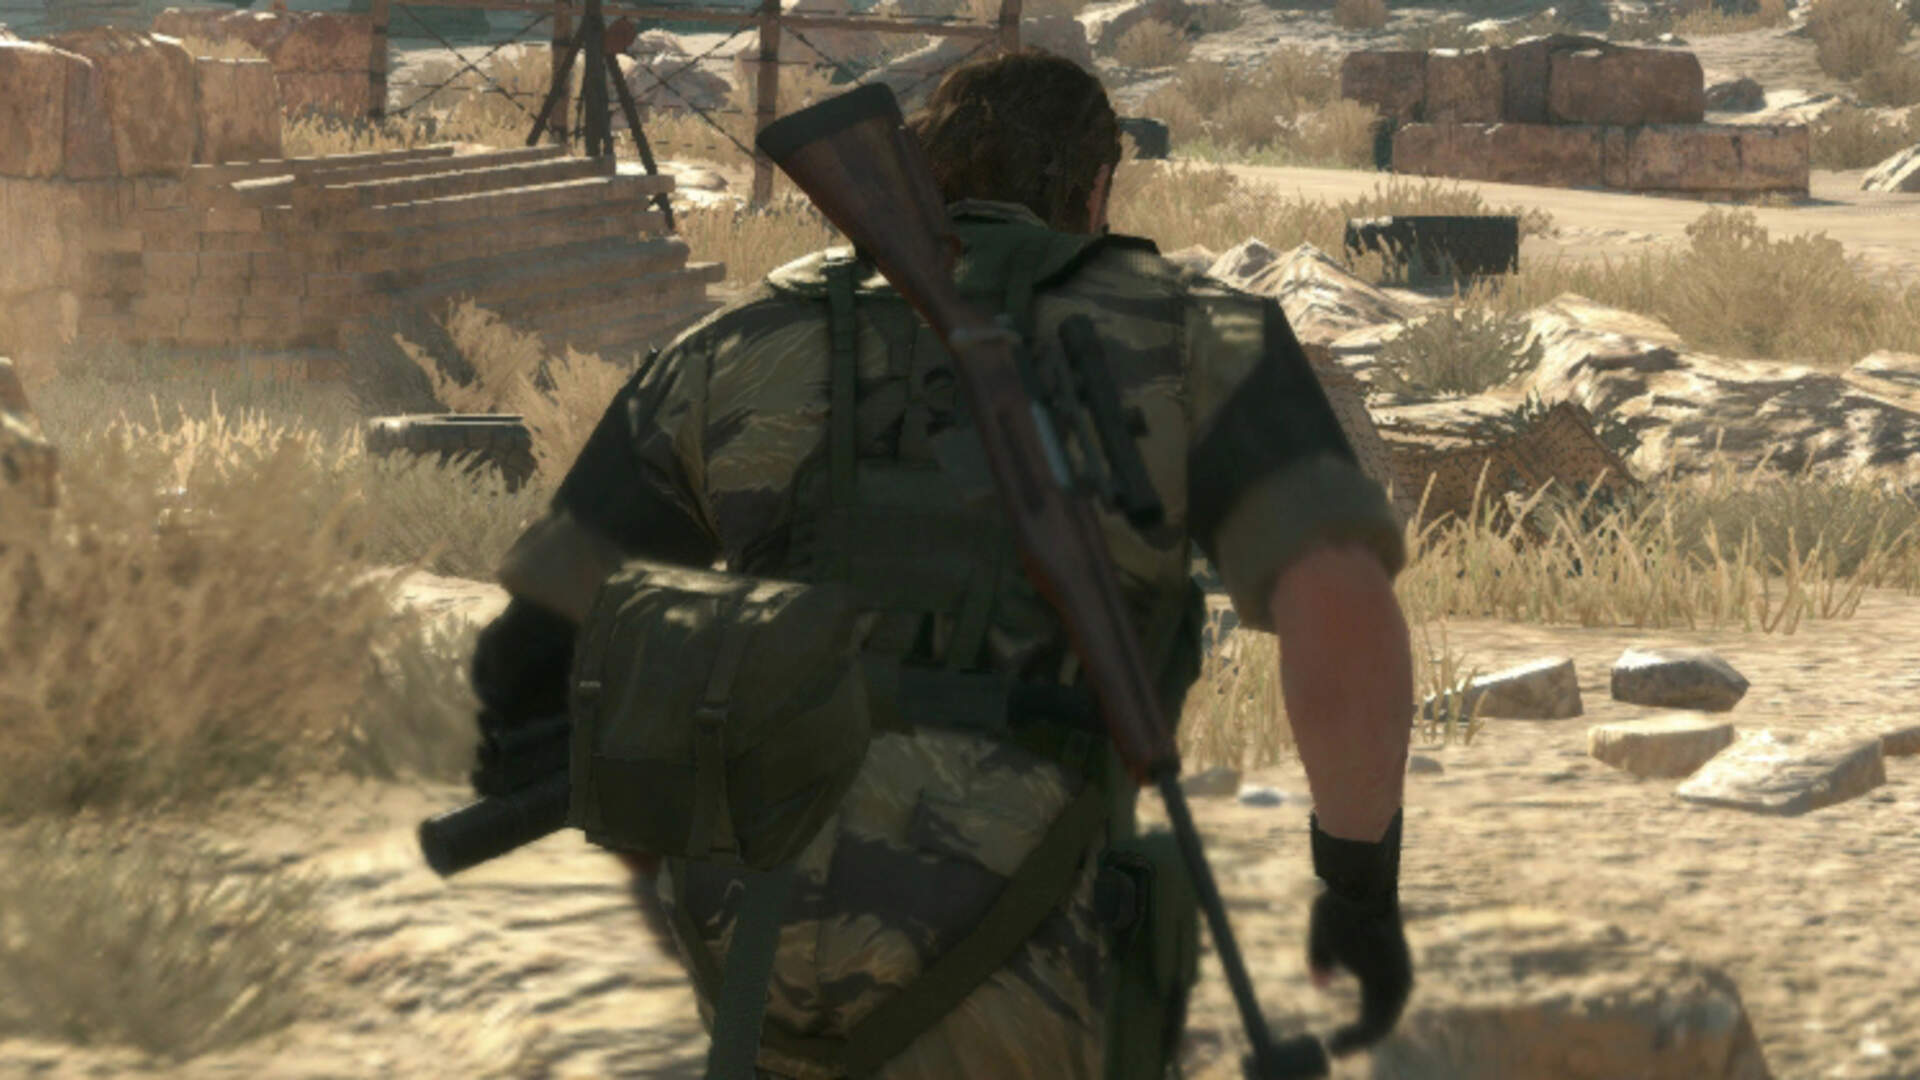 Metal Gear Solid 5 - Memento Photos Location Guide - Extract the Wandering Mother Base Soldier Side Ops missions